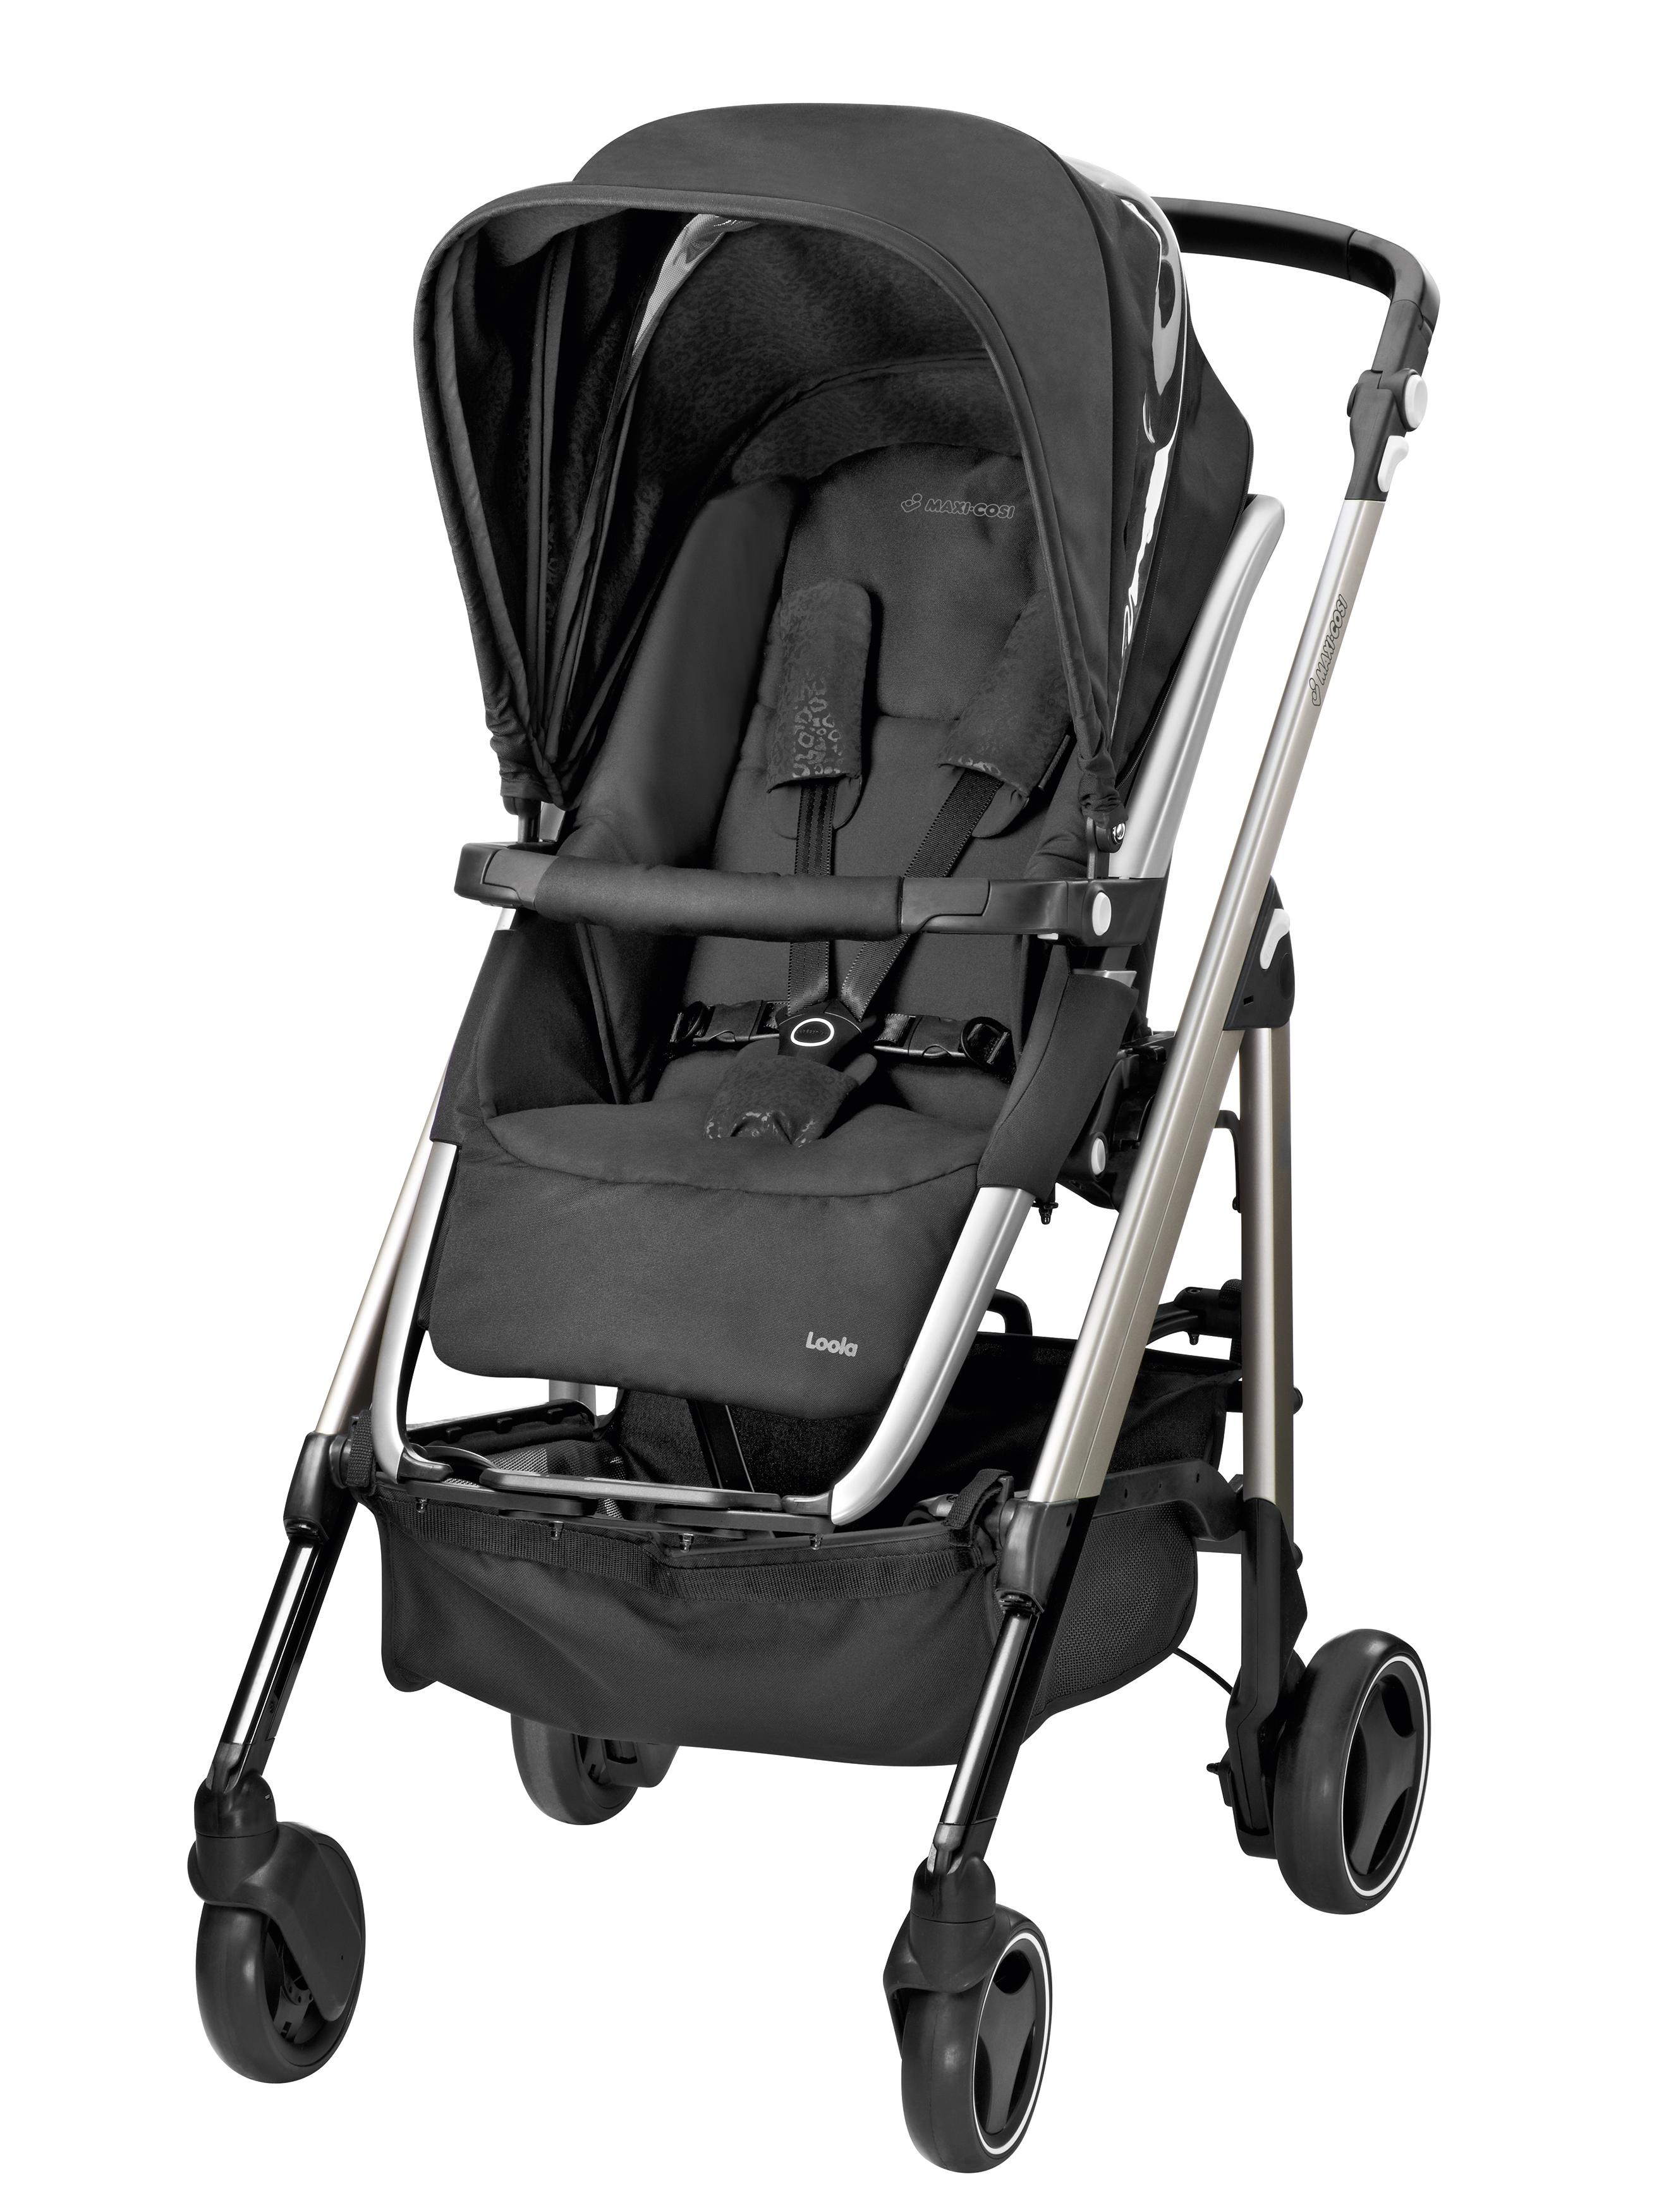 maxi cosi loola pushchair modern black baby. Black Bedroom Furniture Sets. Home Design Ideas